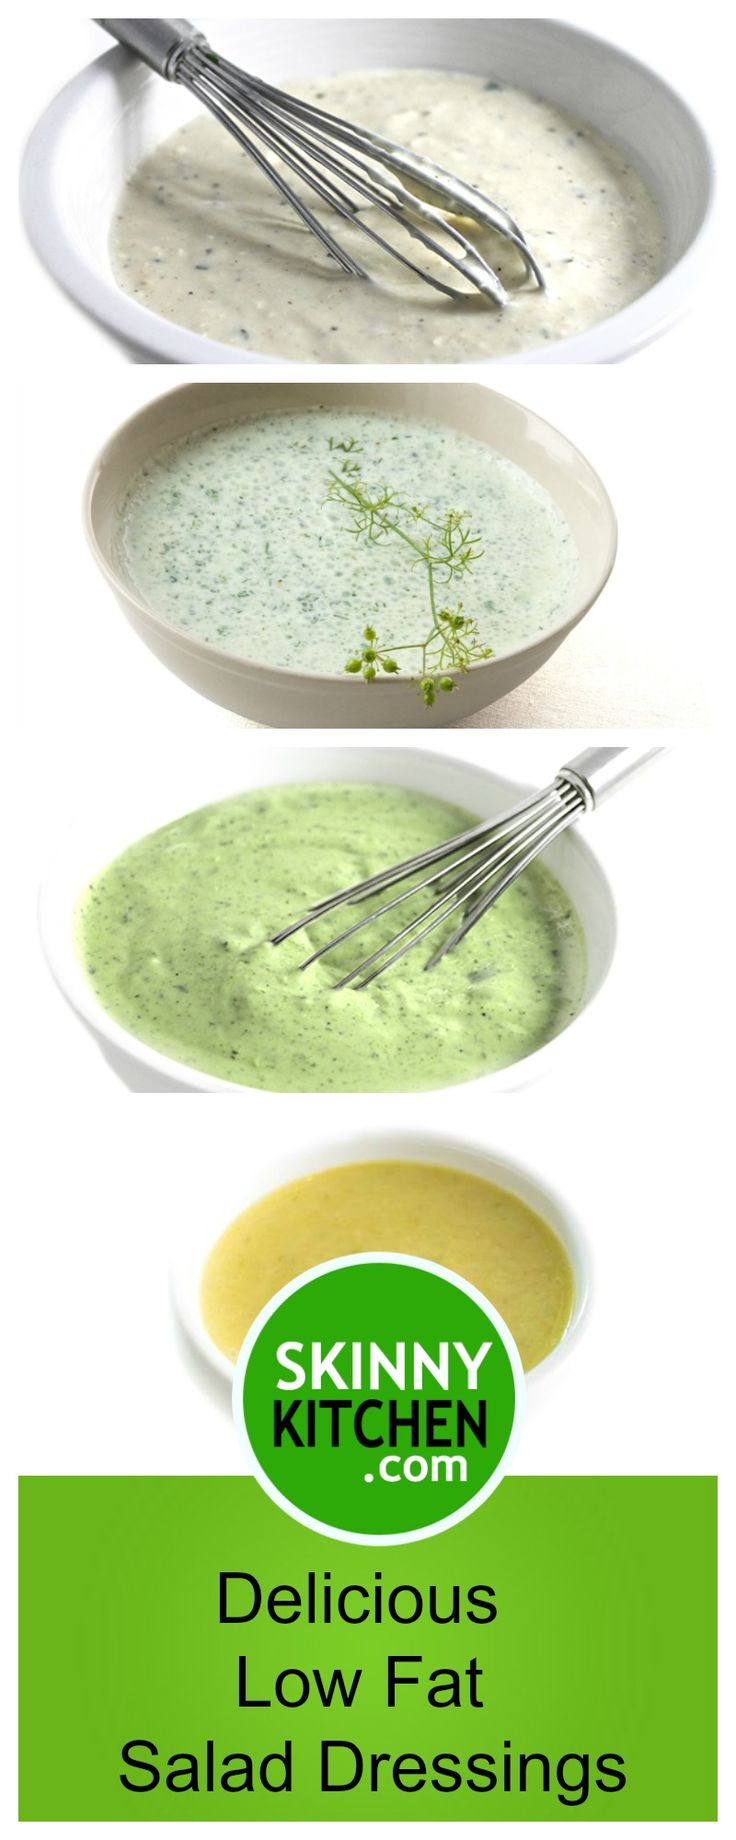 5 More Incredibly Delicious Low Fat Salad Dressings. All start with my skinny ranch dressing as the base. They include, Parmesan Ranch, Cilantro, Curry, and Green Goddess. All dressing are under 24 cal/TBSP and under 2g fat. All include SmartPoints #saladdressings #glutenfree http://www.skinnykitchen.com/recipes/5-more-delicious-low-fat-salad-dressings/